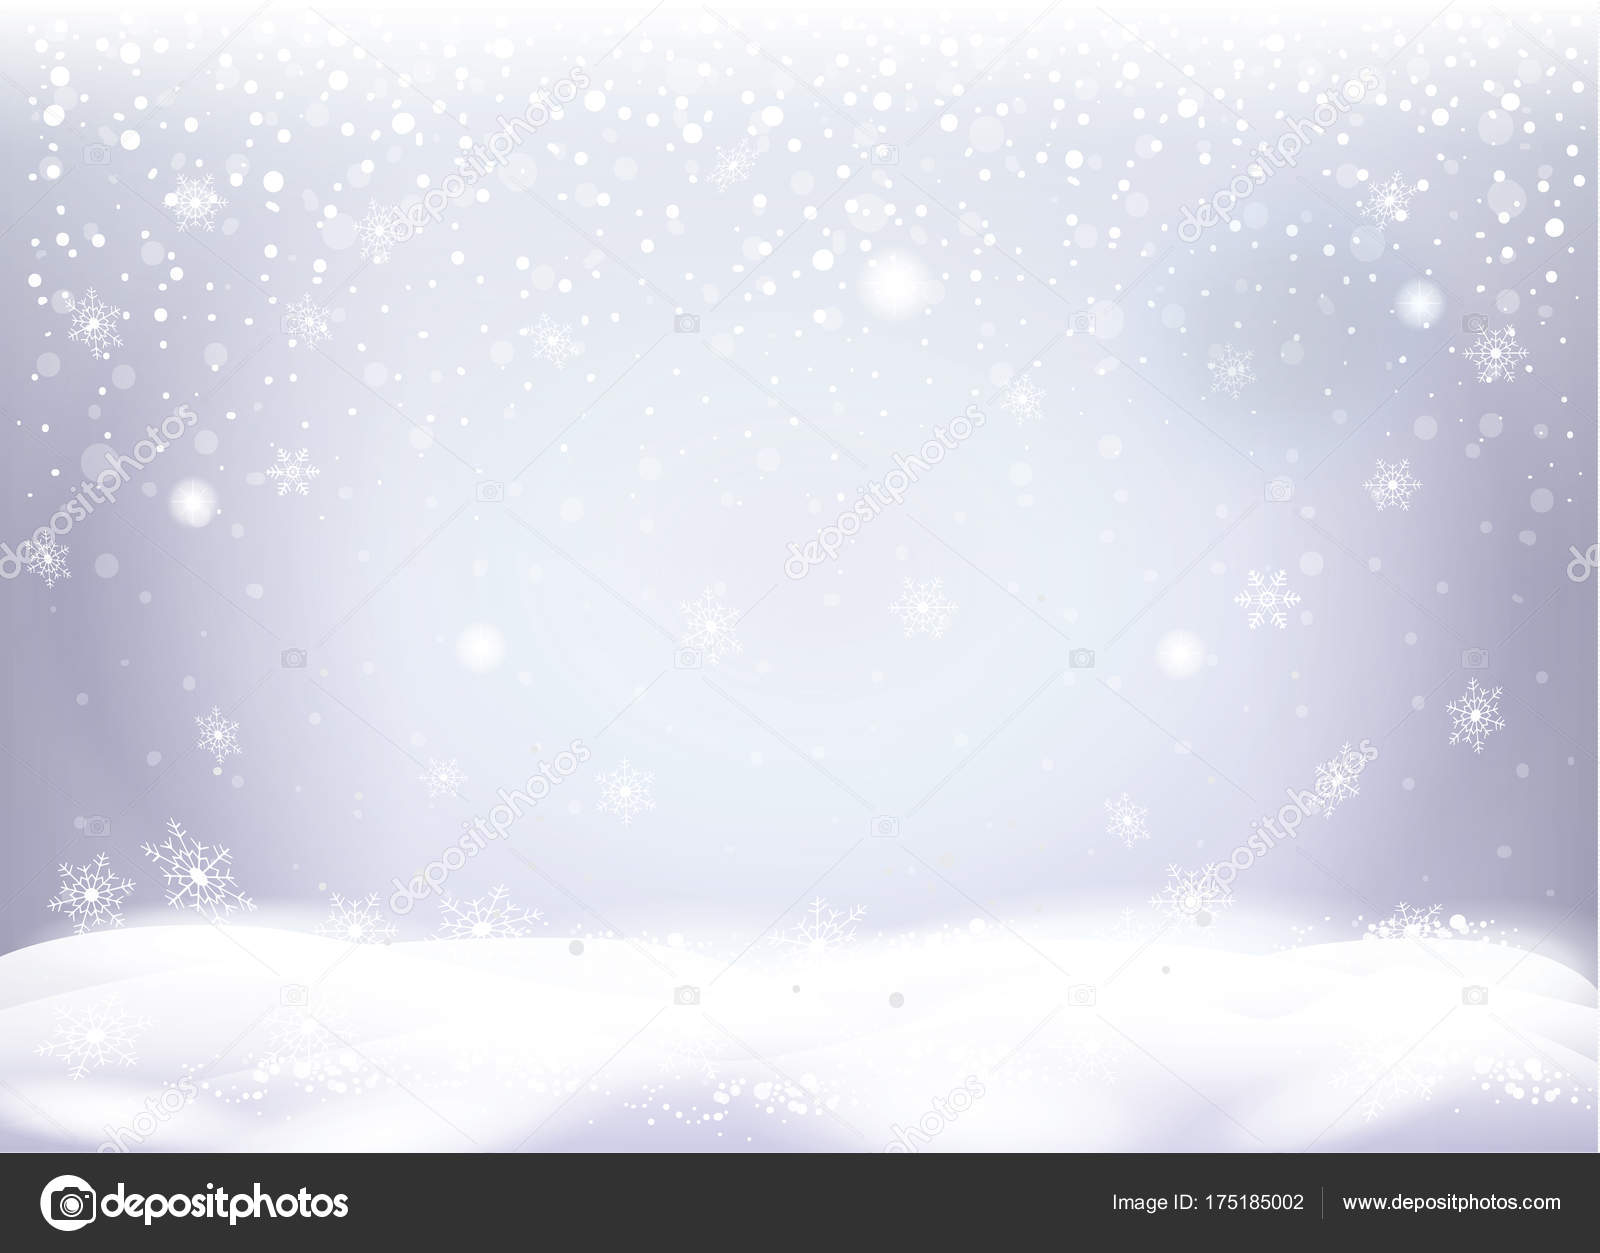 Christmas Snowy Landscape Beautiful Snow Mountain Snowflakes Falling Magic Sparkles Stock Vector C Sofiartmedia Gmail Com 175185002